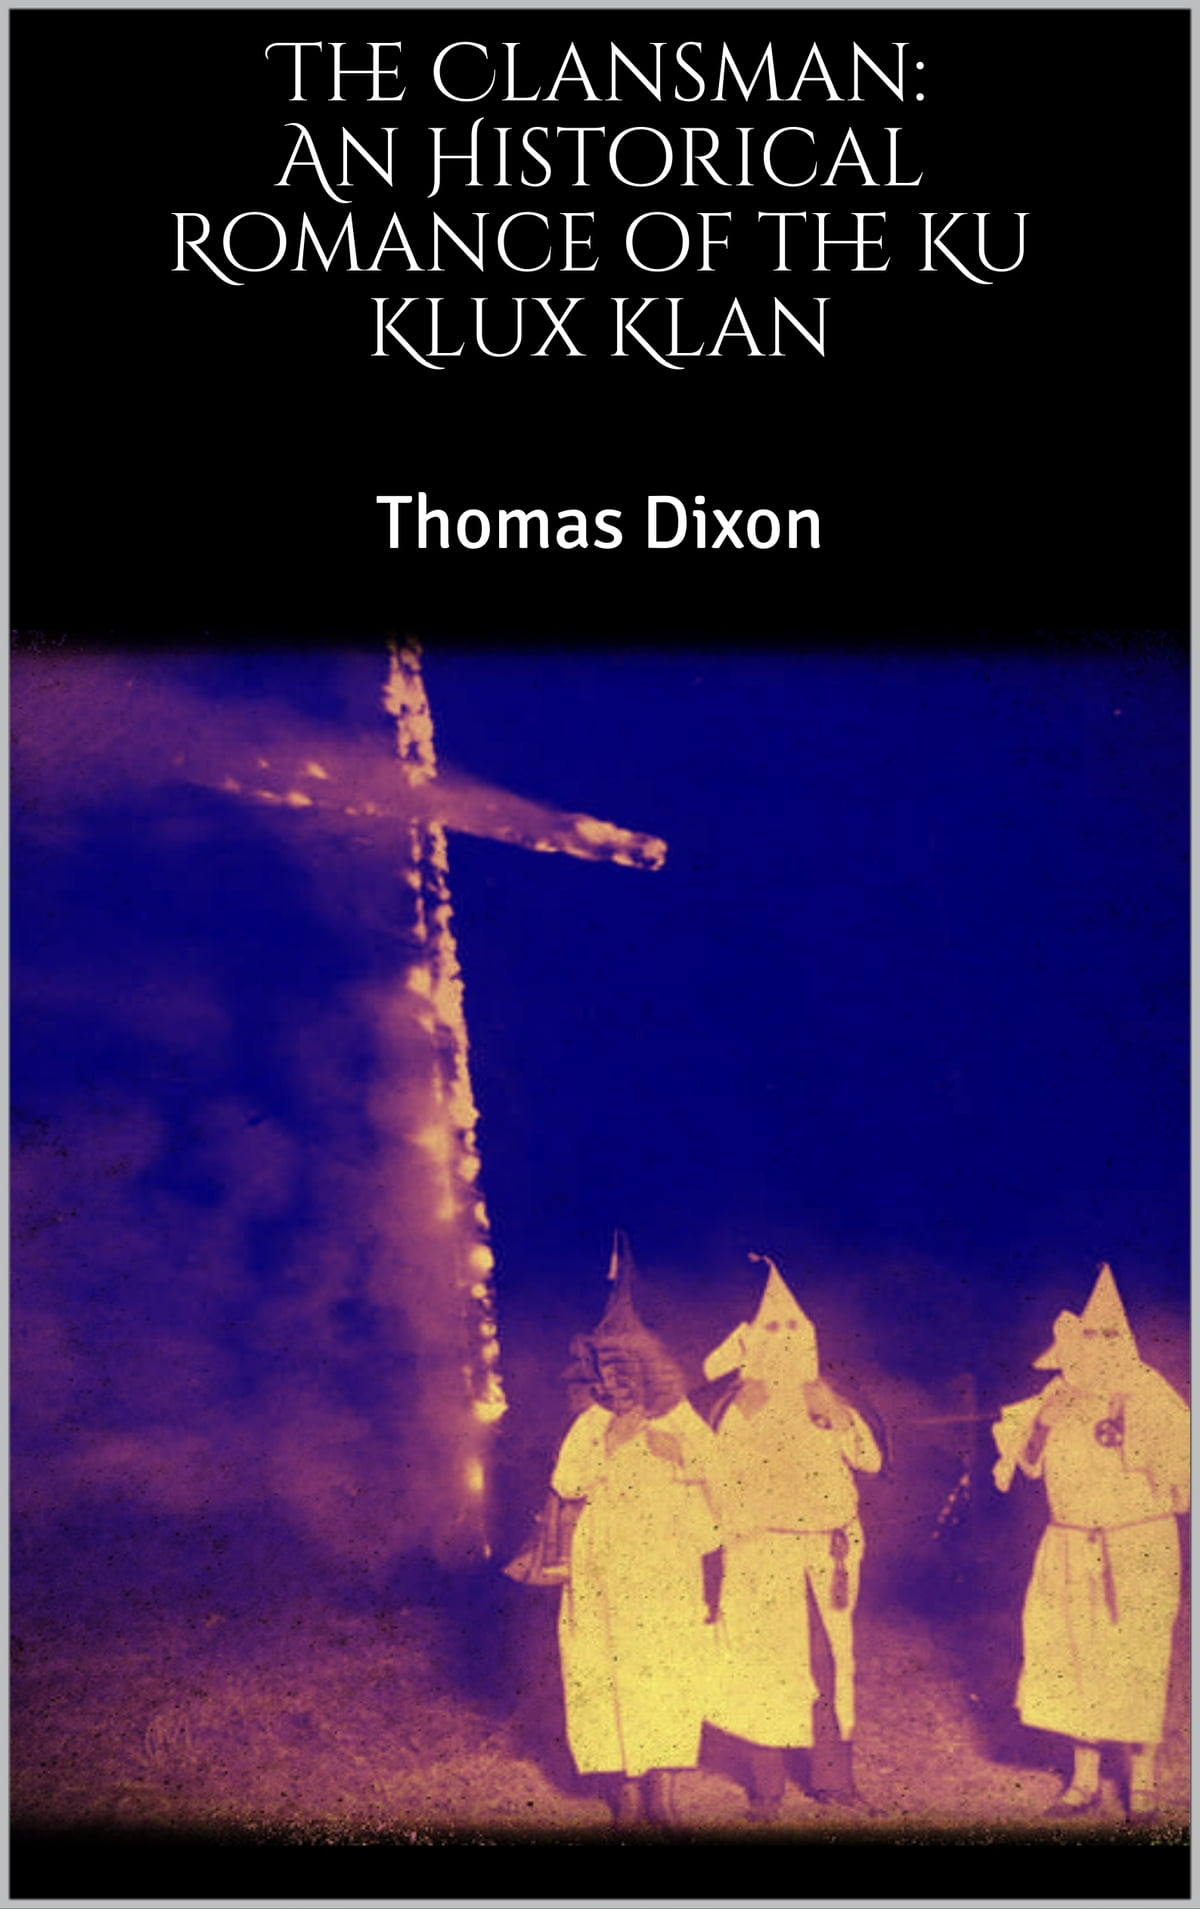 Libros Sobre El Ku Klux Klan The Clansman An Historical Romance Of The Ku Klux Klan Ebook By Thomas Dixon Rakuten Kobo